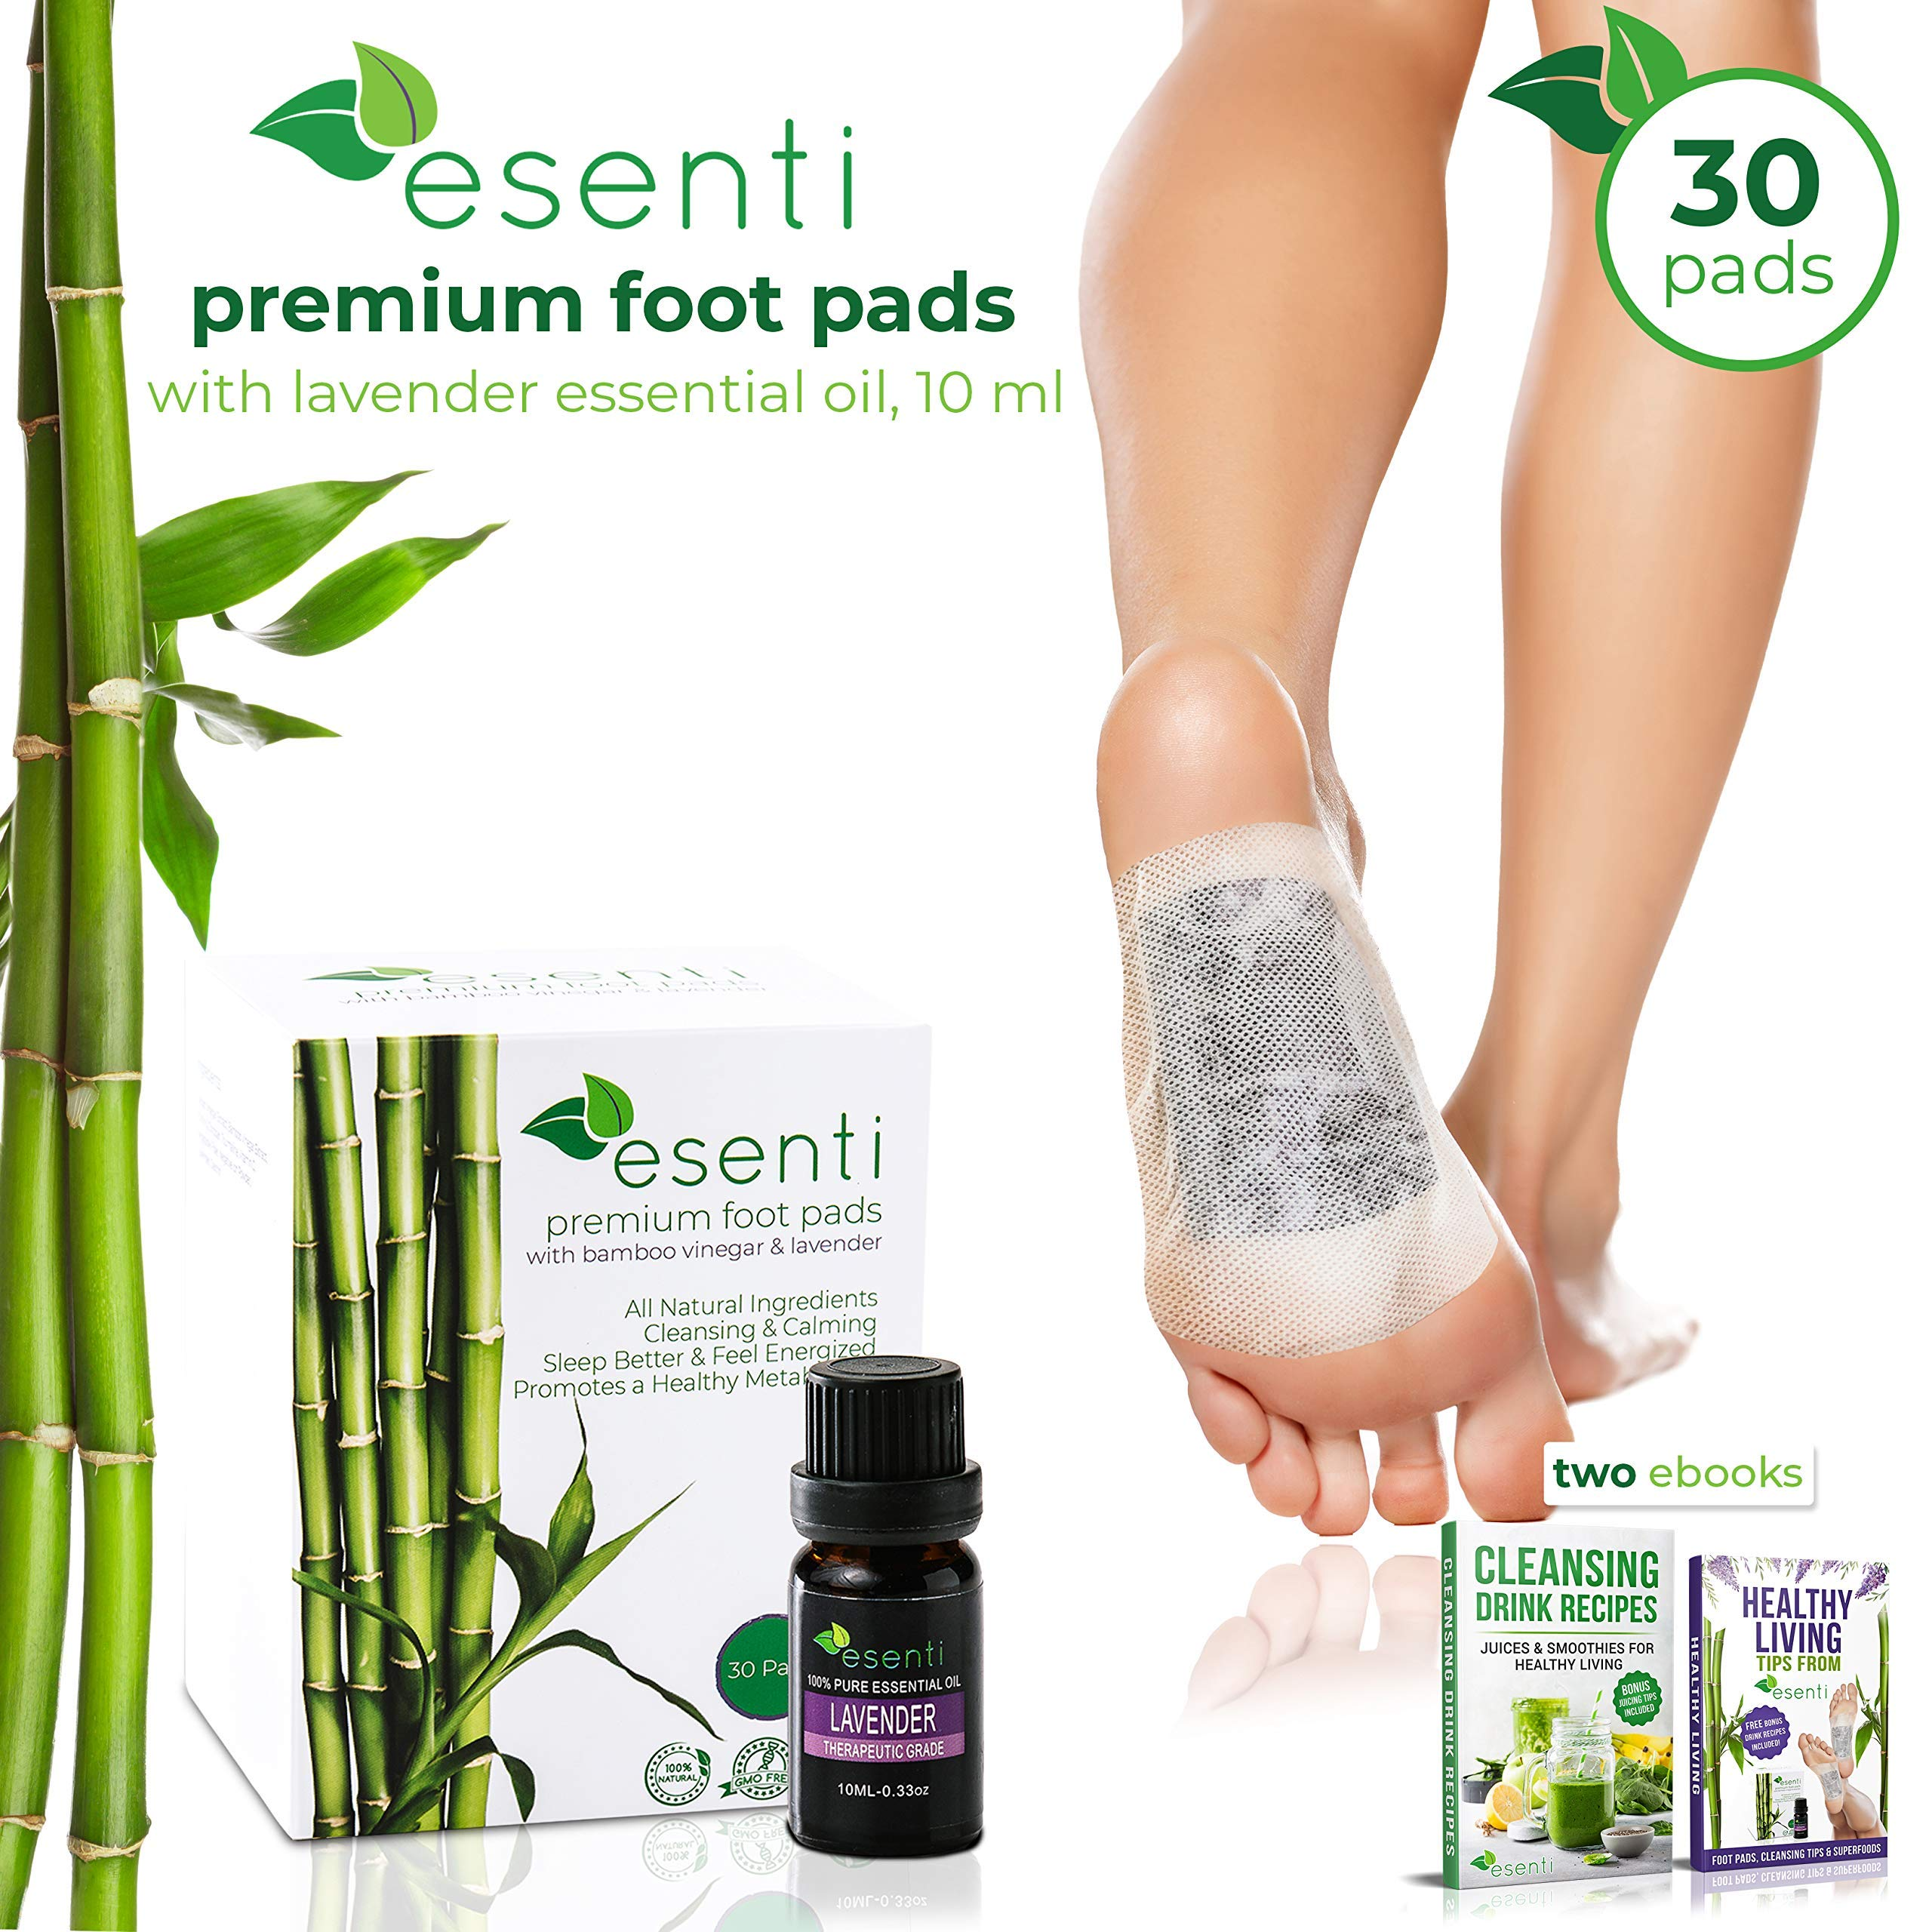 Foot Pads & Lavender Essential Oil   100% All Natural Self Adhesive Cleansing Foot Pads   Relieve Stress & Improve Sleep   for Pain Relief & Foot Odor   30 Pads   FDA Certified   Full Body Cleanse